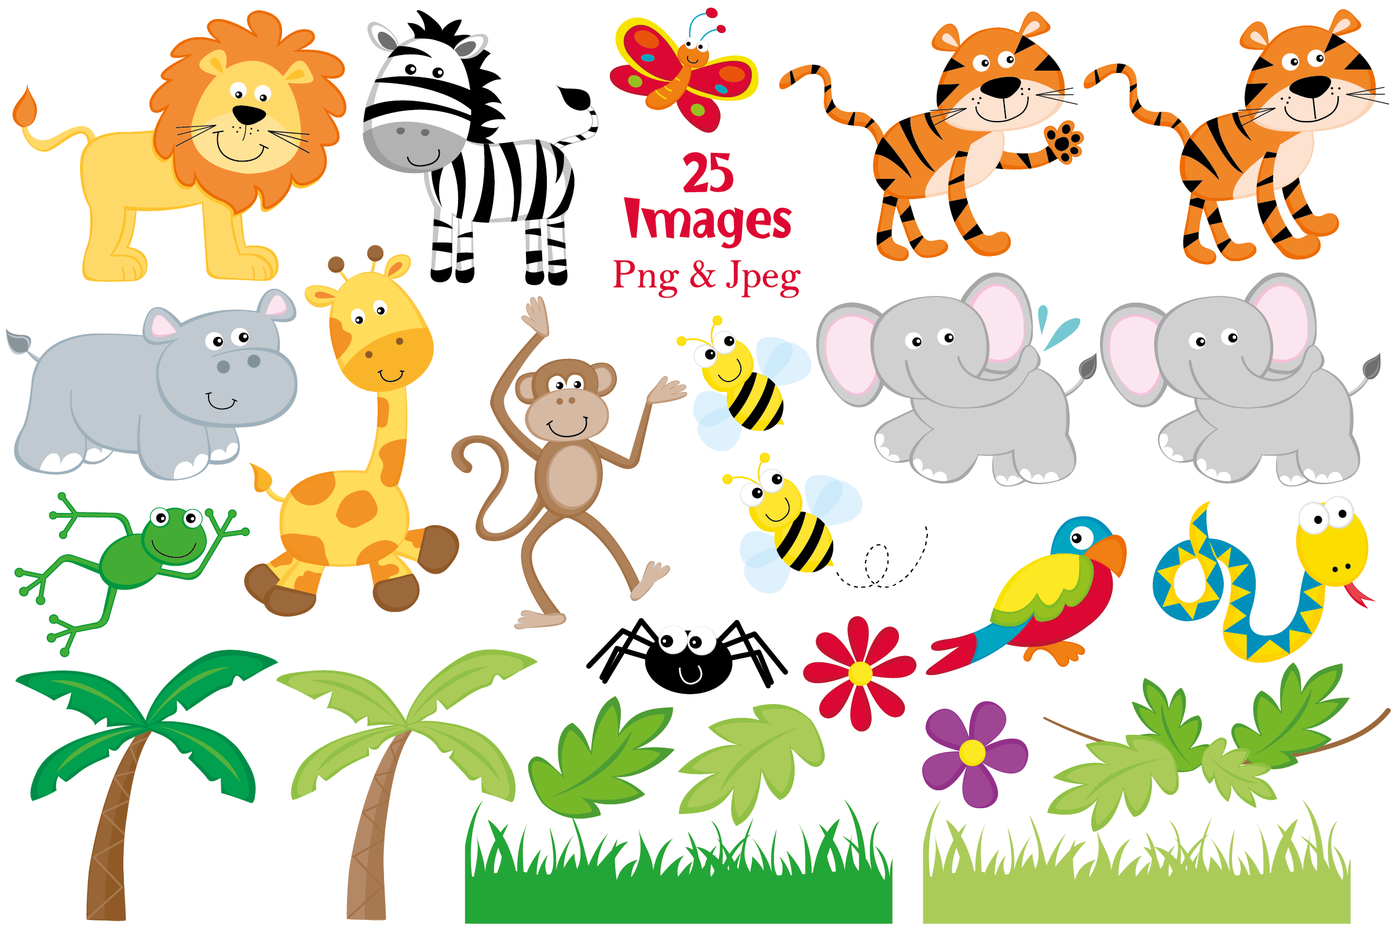 Jungle Animals Clipart, Jungle Graphics & Illustrations, Jungle.